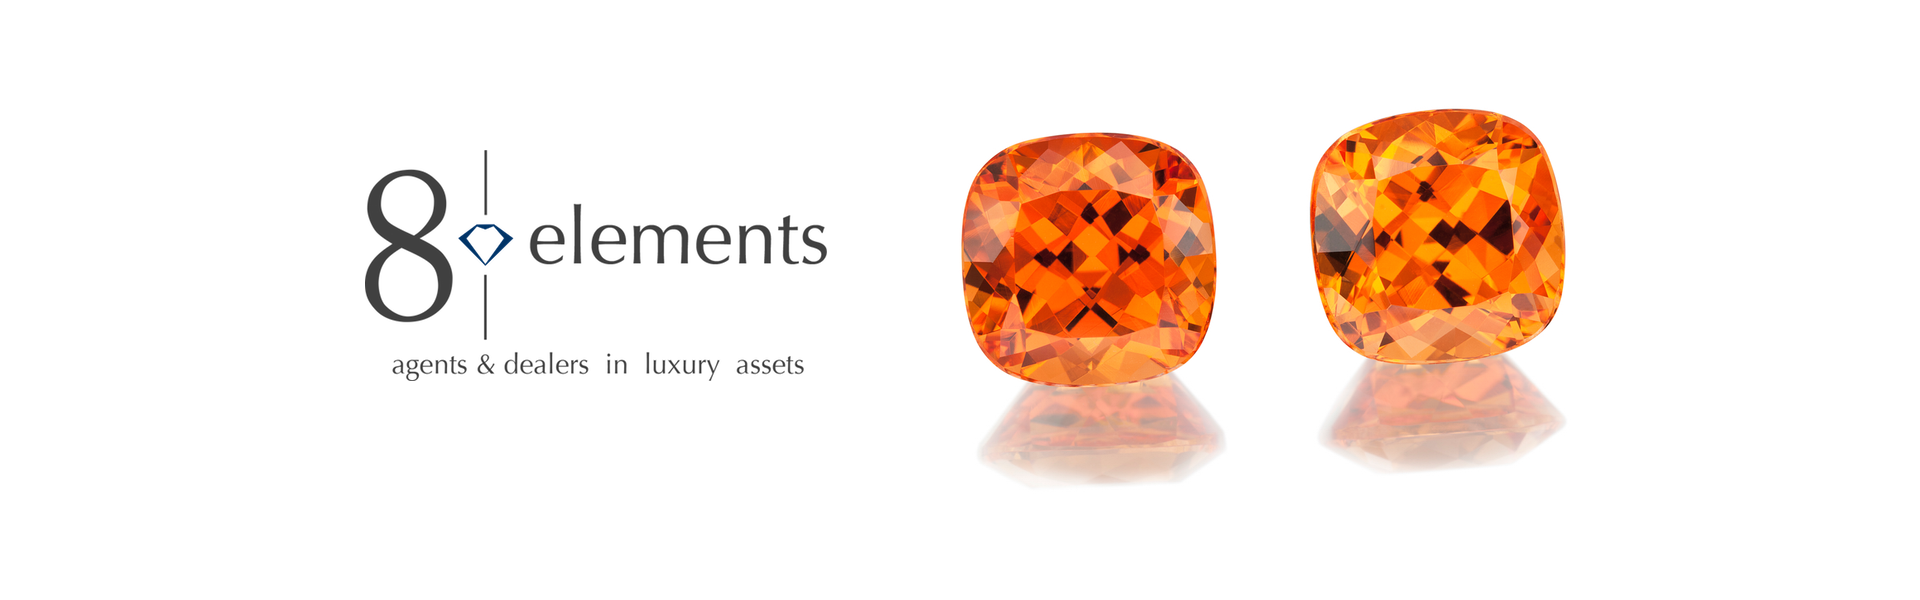 eight elements - agents & dealers in luxury assets